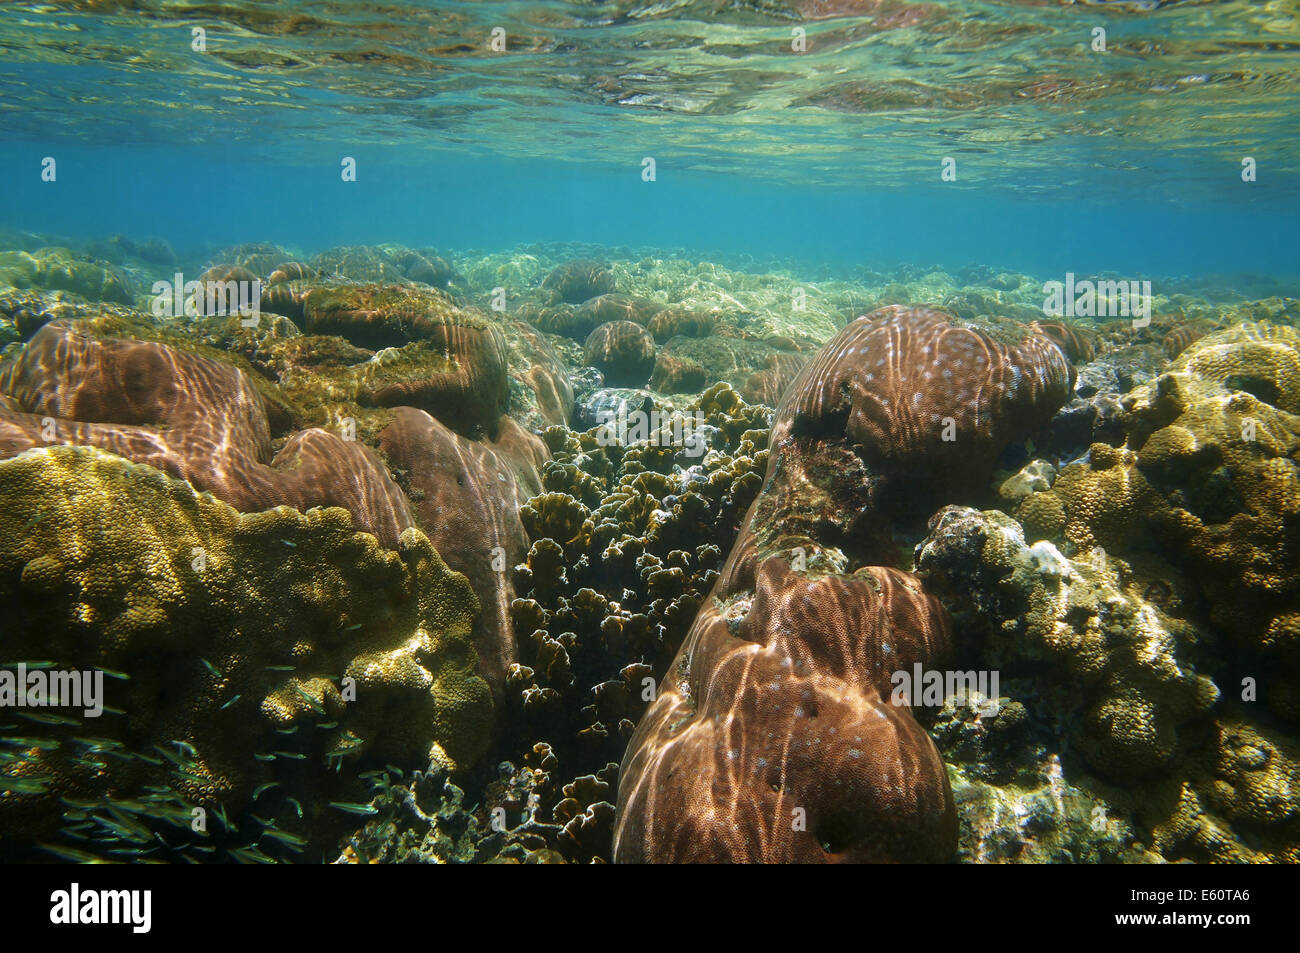 underwater coral reef close to water surface, Caribbean sea - Stock Image